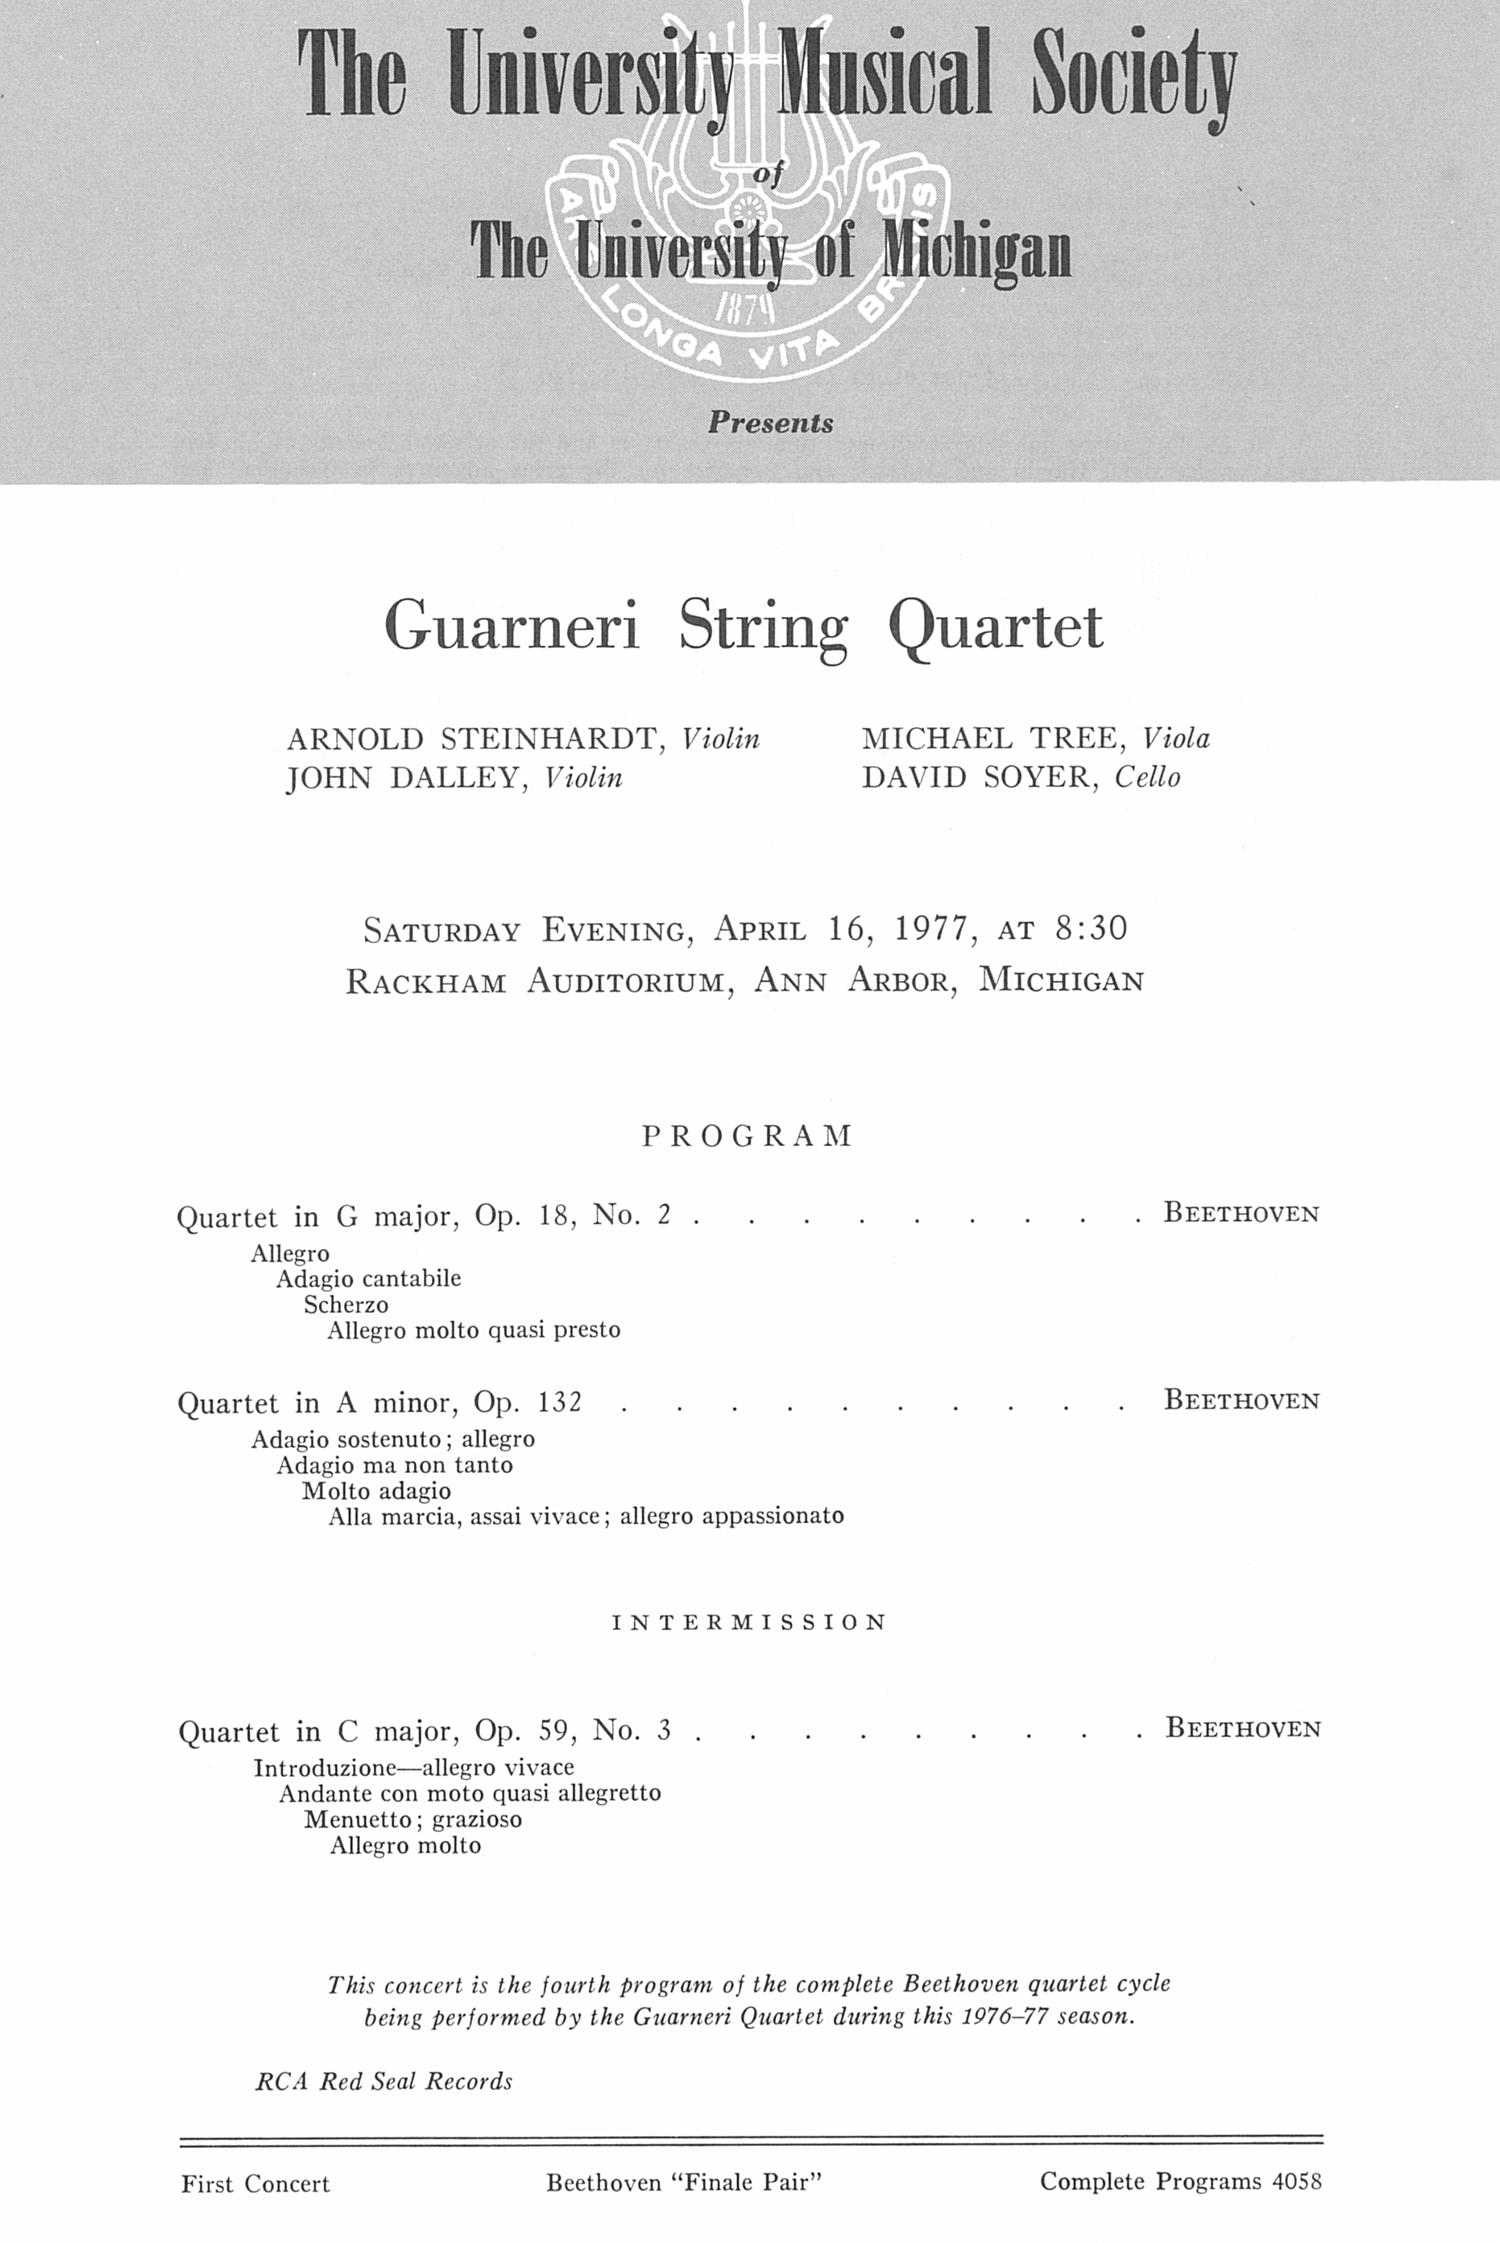 UMS Concert Program, April 16, 1977: Guarneri String Quartet